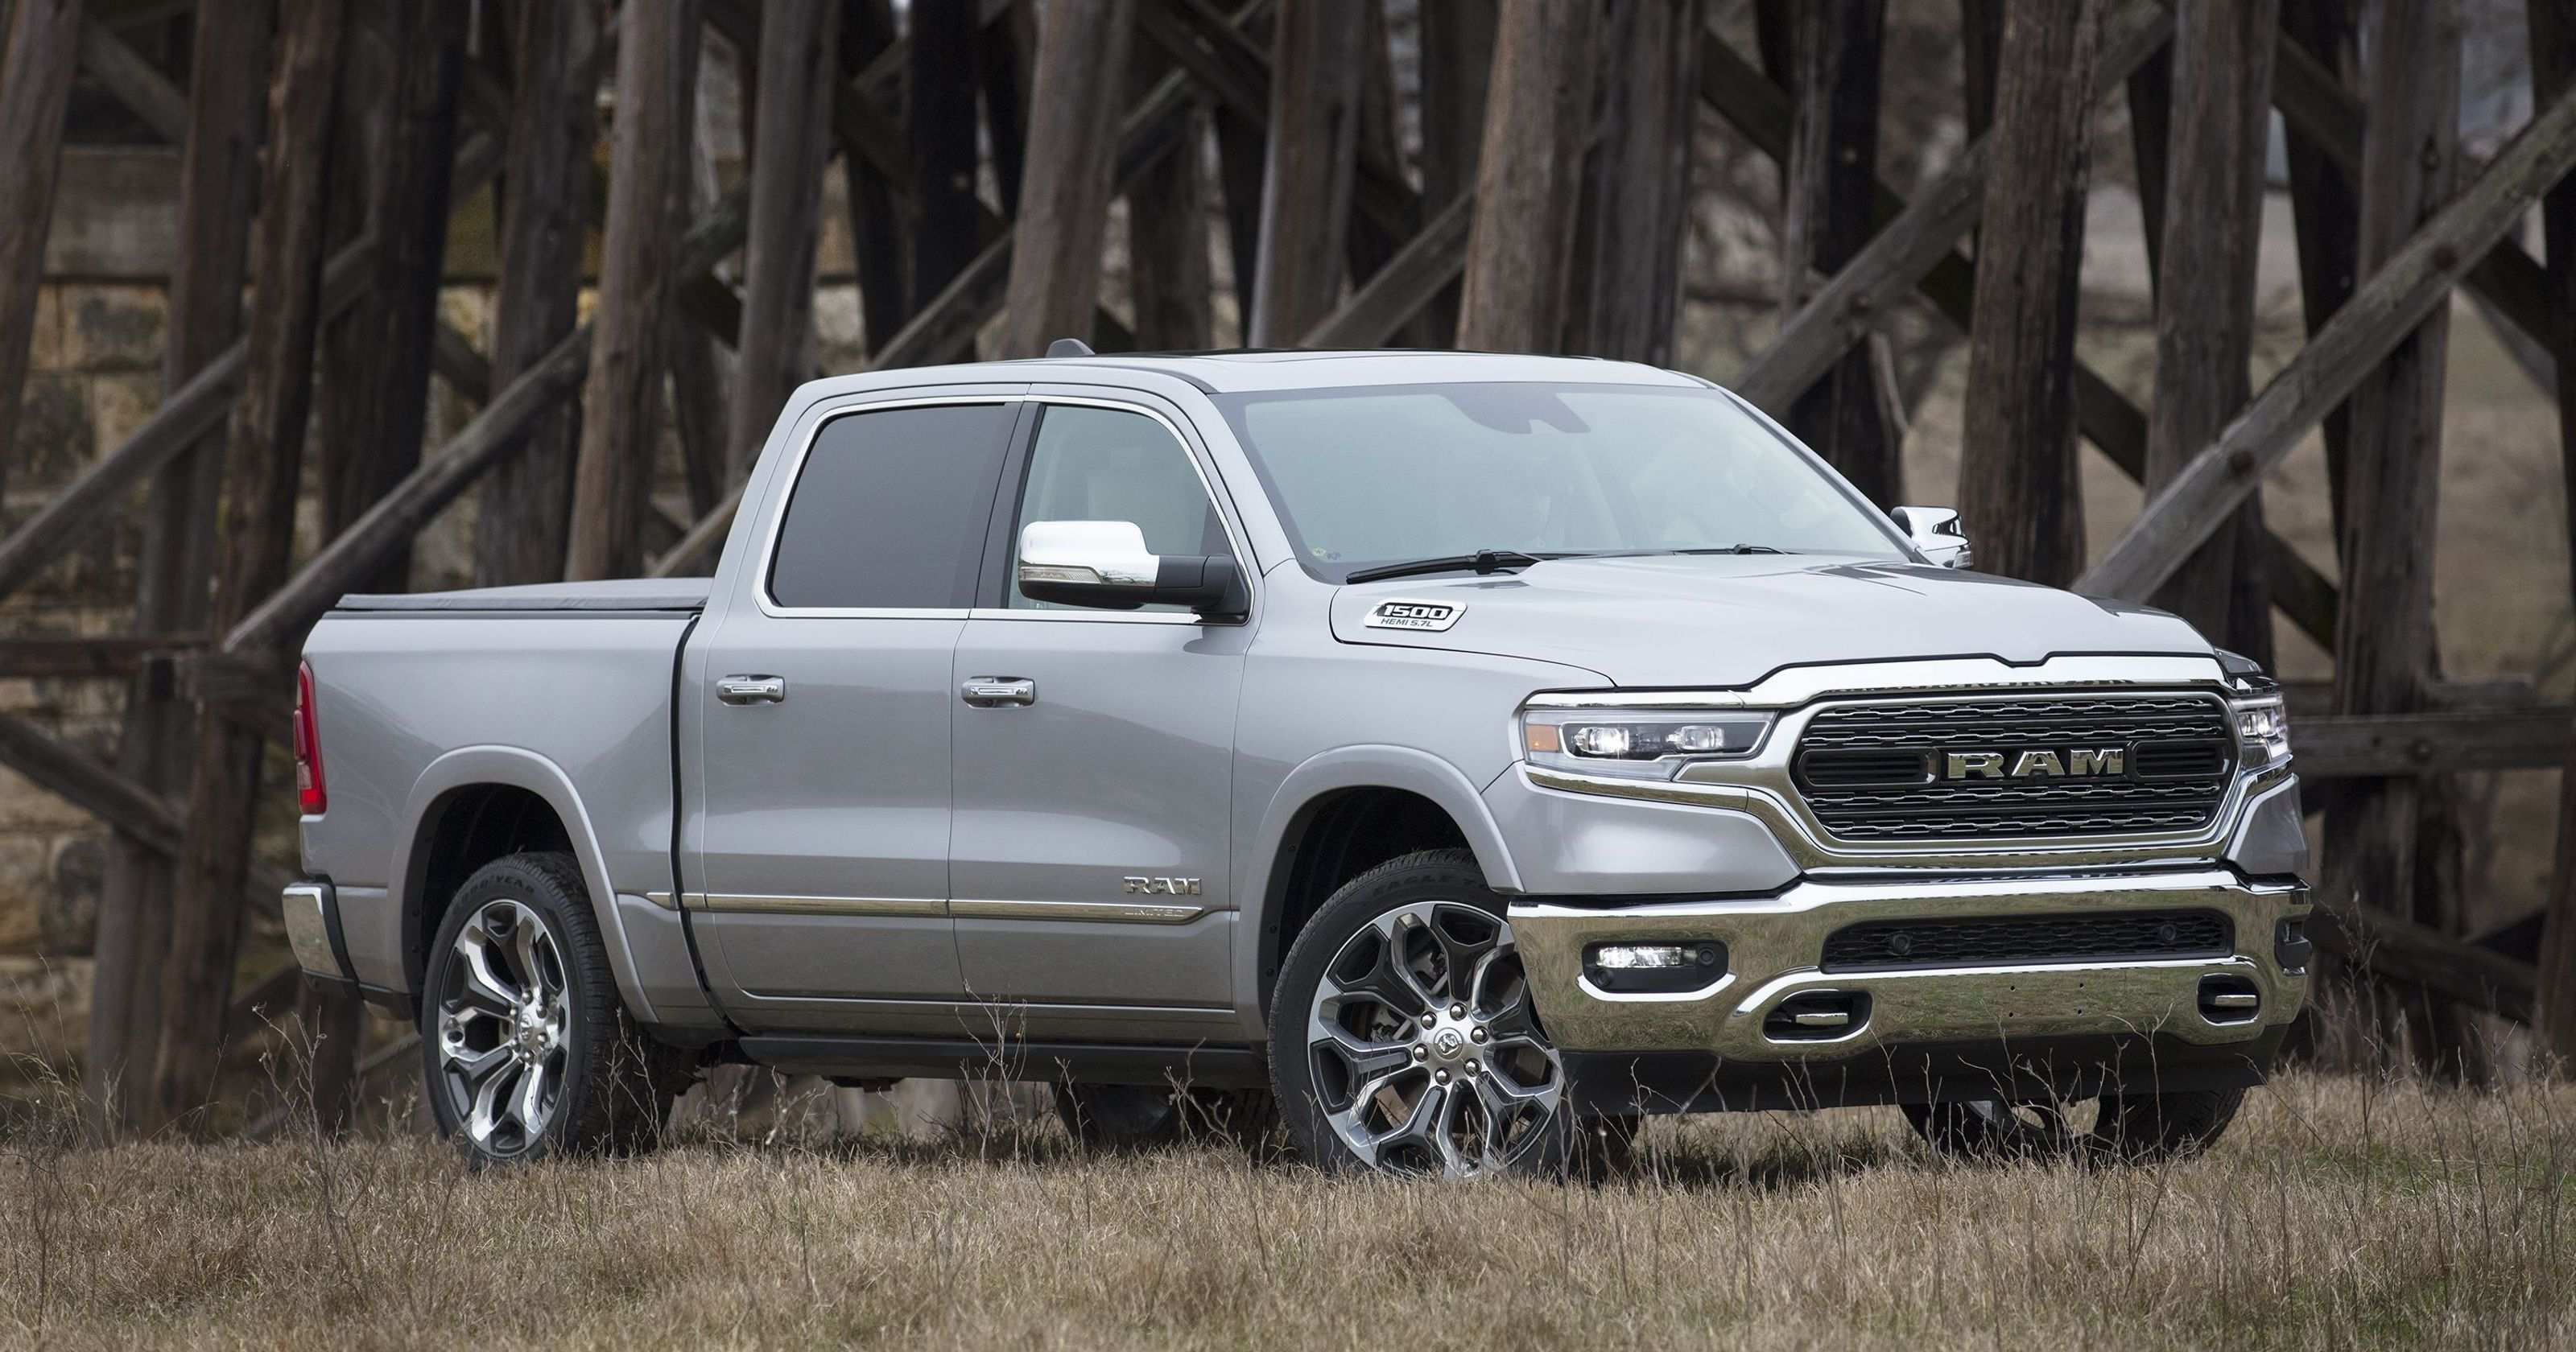 61 Great New Gmc 2019 Sierra 1500 First Drive Reviews for New Gmc 2019 Sierra 1500 First Drive